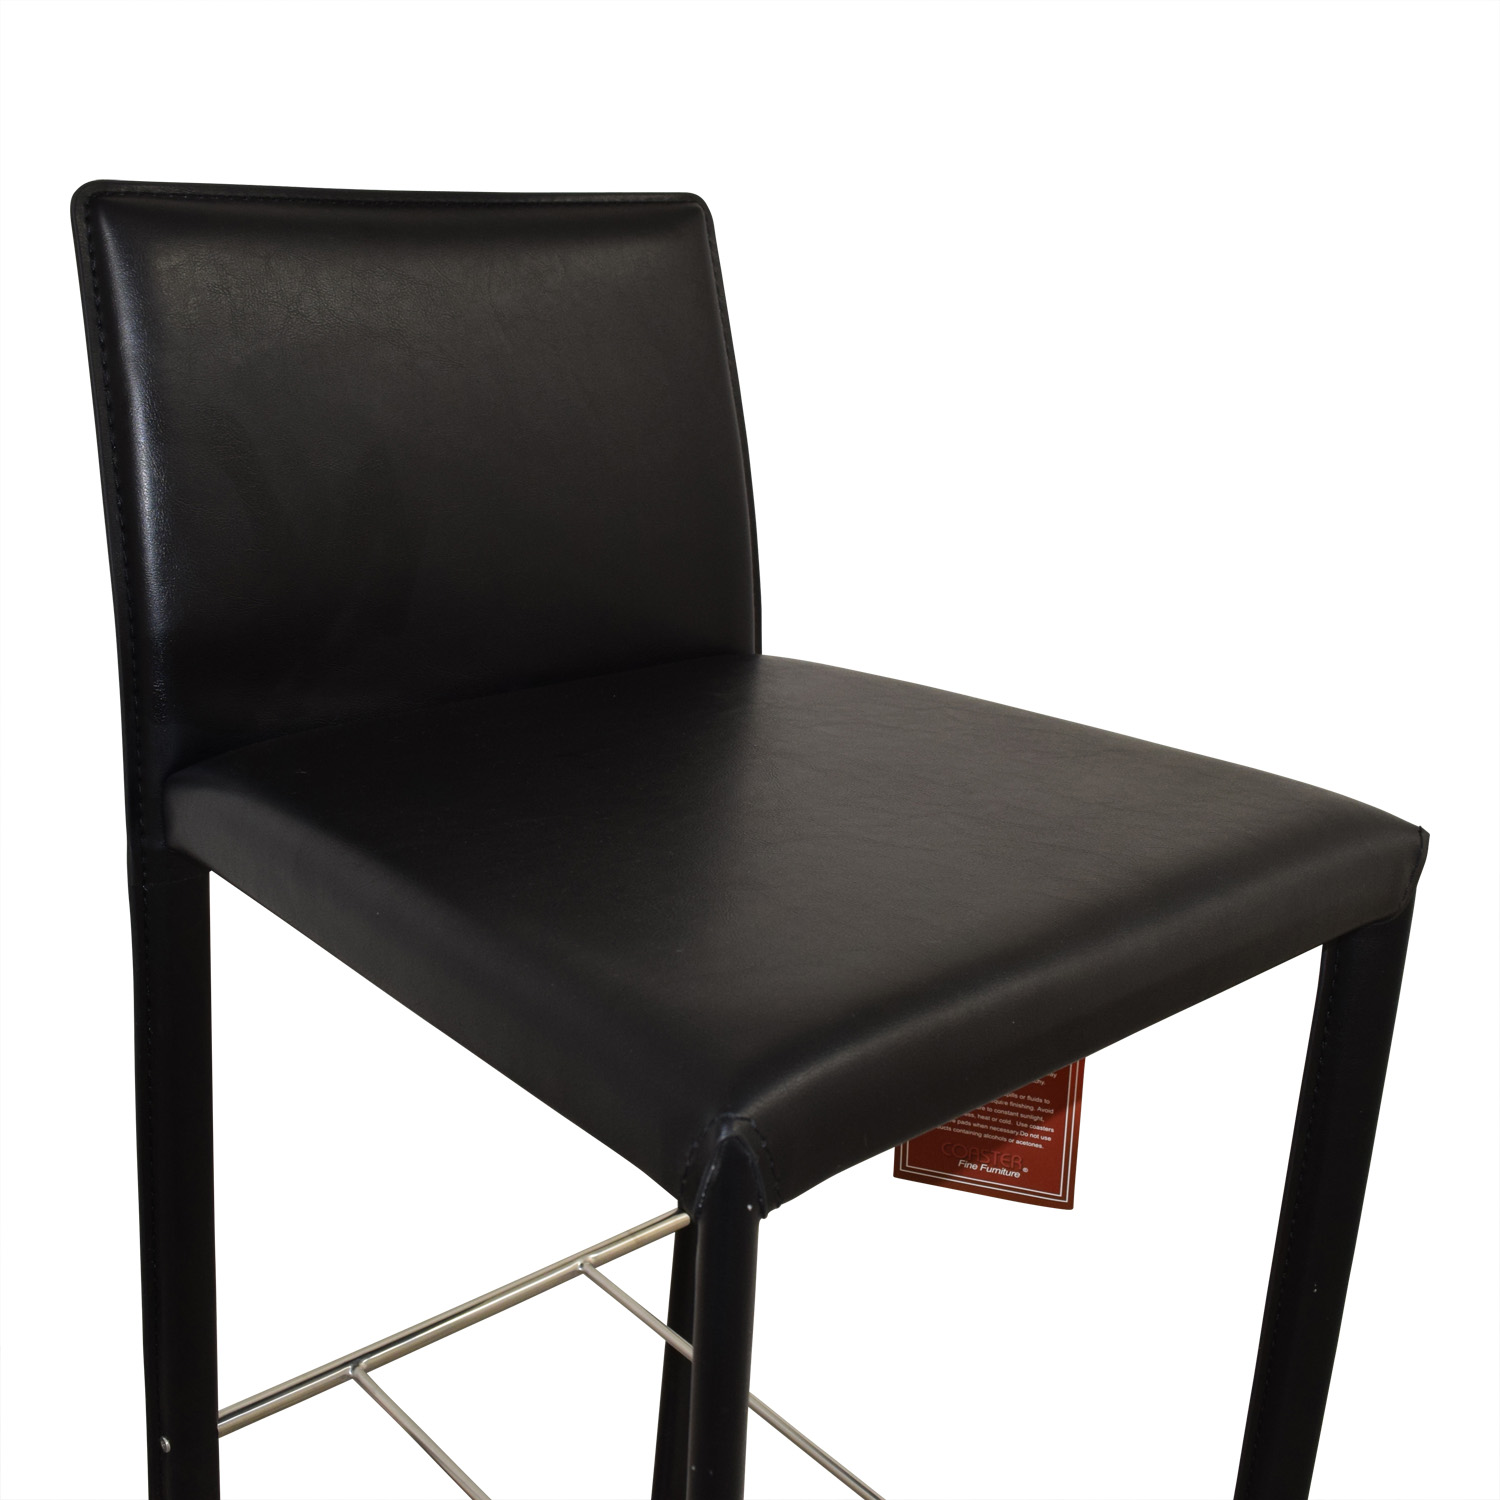 Coaster Coaster Modern Black Leatherette Bar Chair second hand